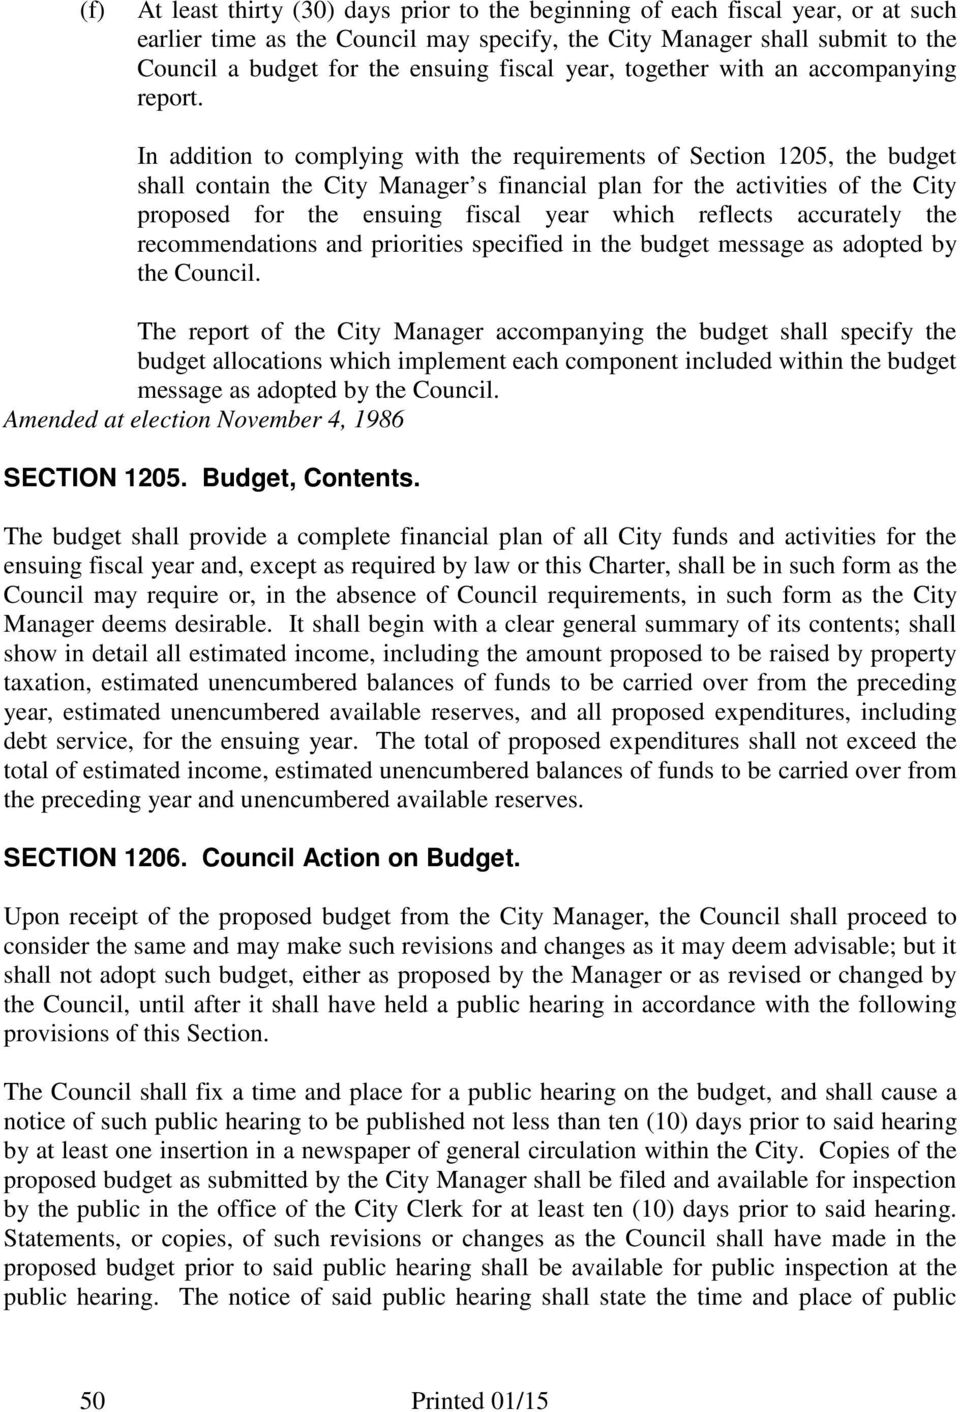 In addition to complying with the requirements of Section 1205, the budget shall contain the City Manager s financial plan for the activities of the City proposed for the ensuing fiscal year which